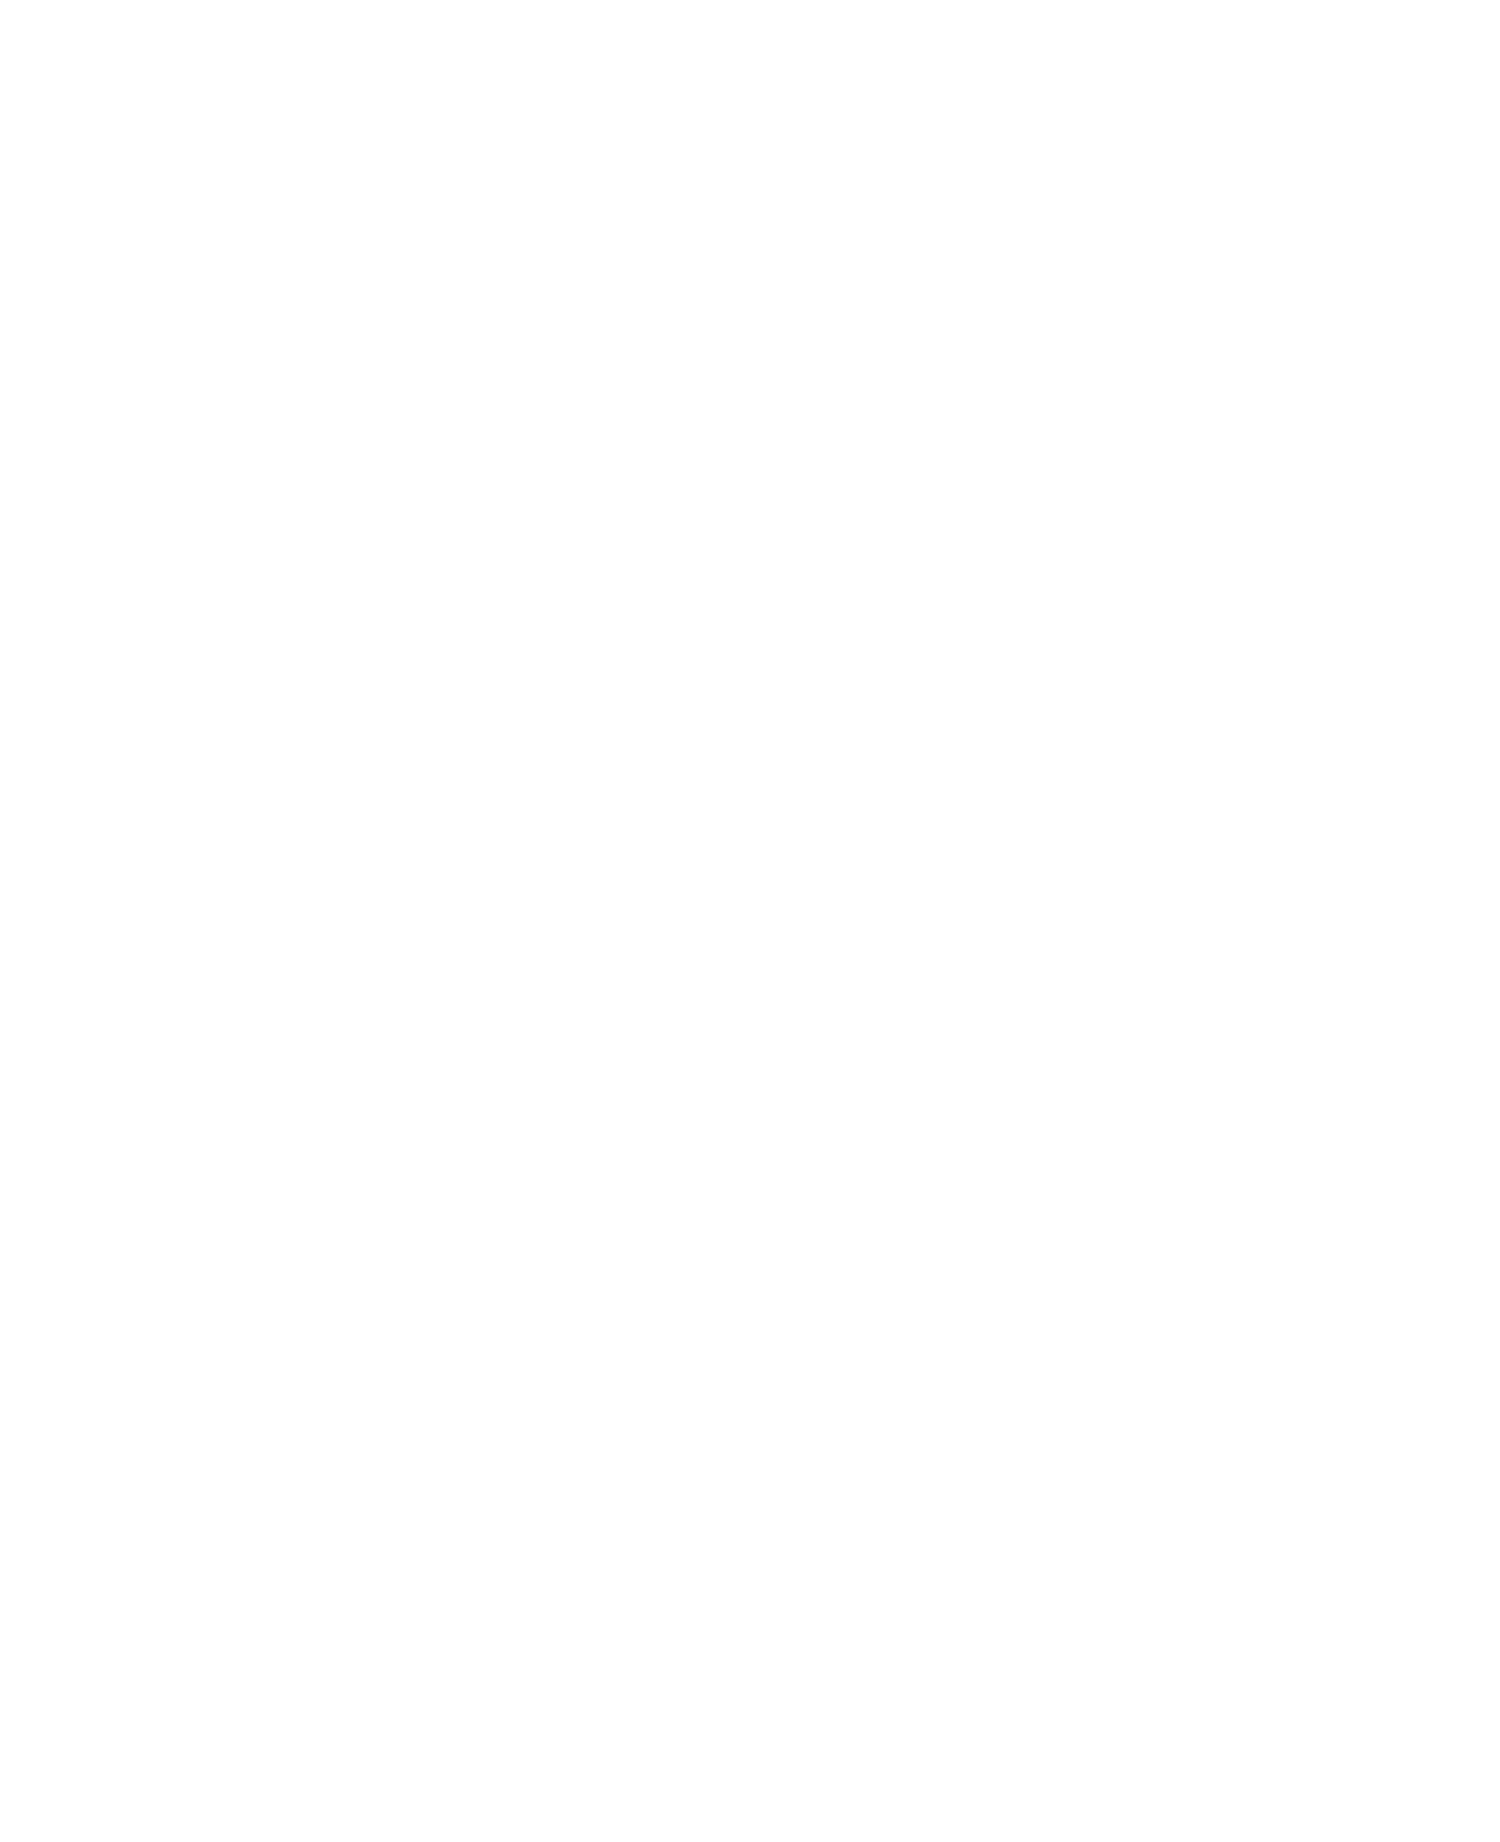 Bendigo Revival Fellowship